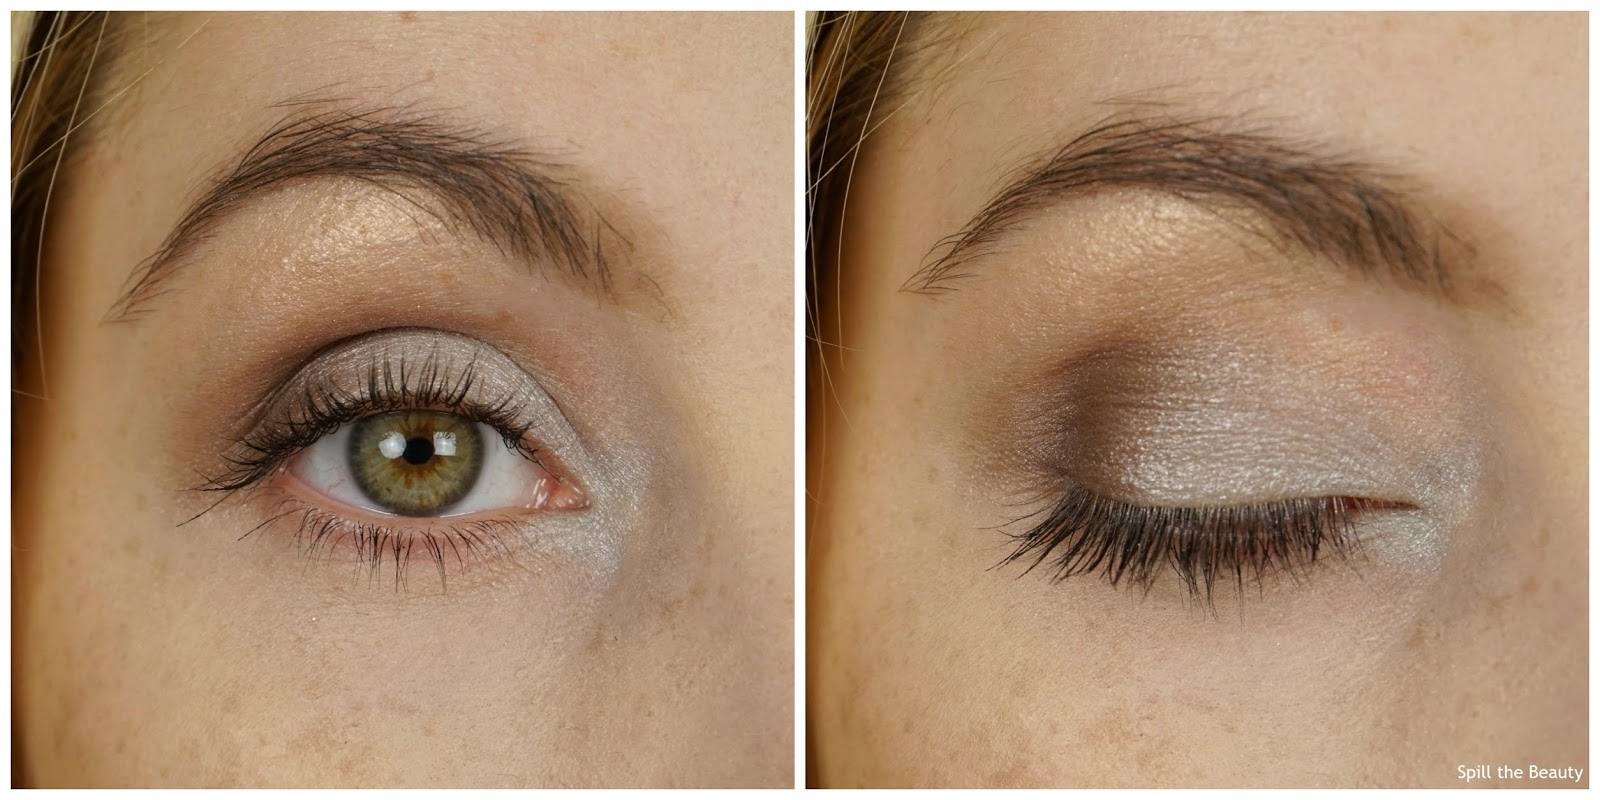 dior 5 couleurs skyline eyeshadow palette parisian sky review swatches eyes